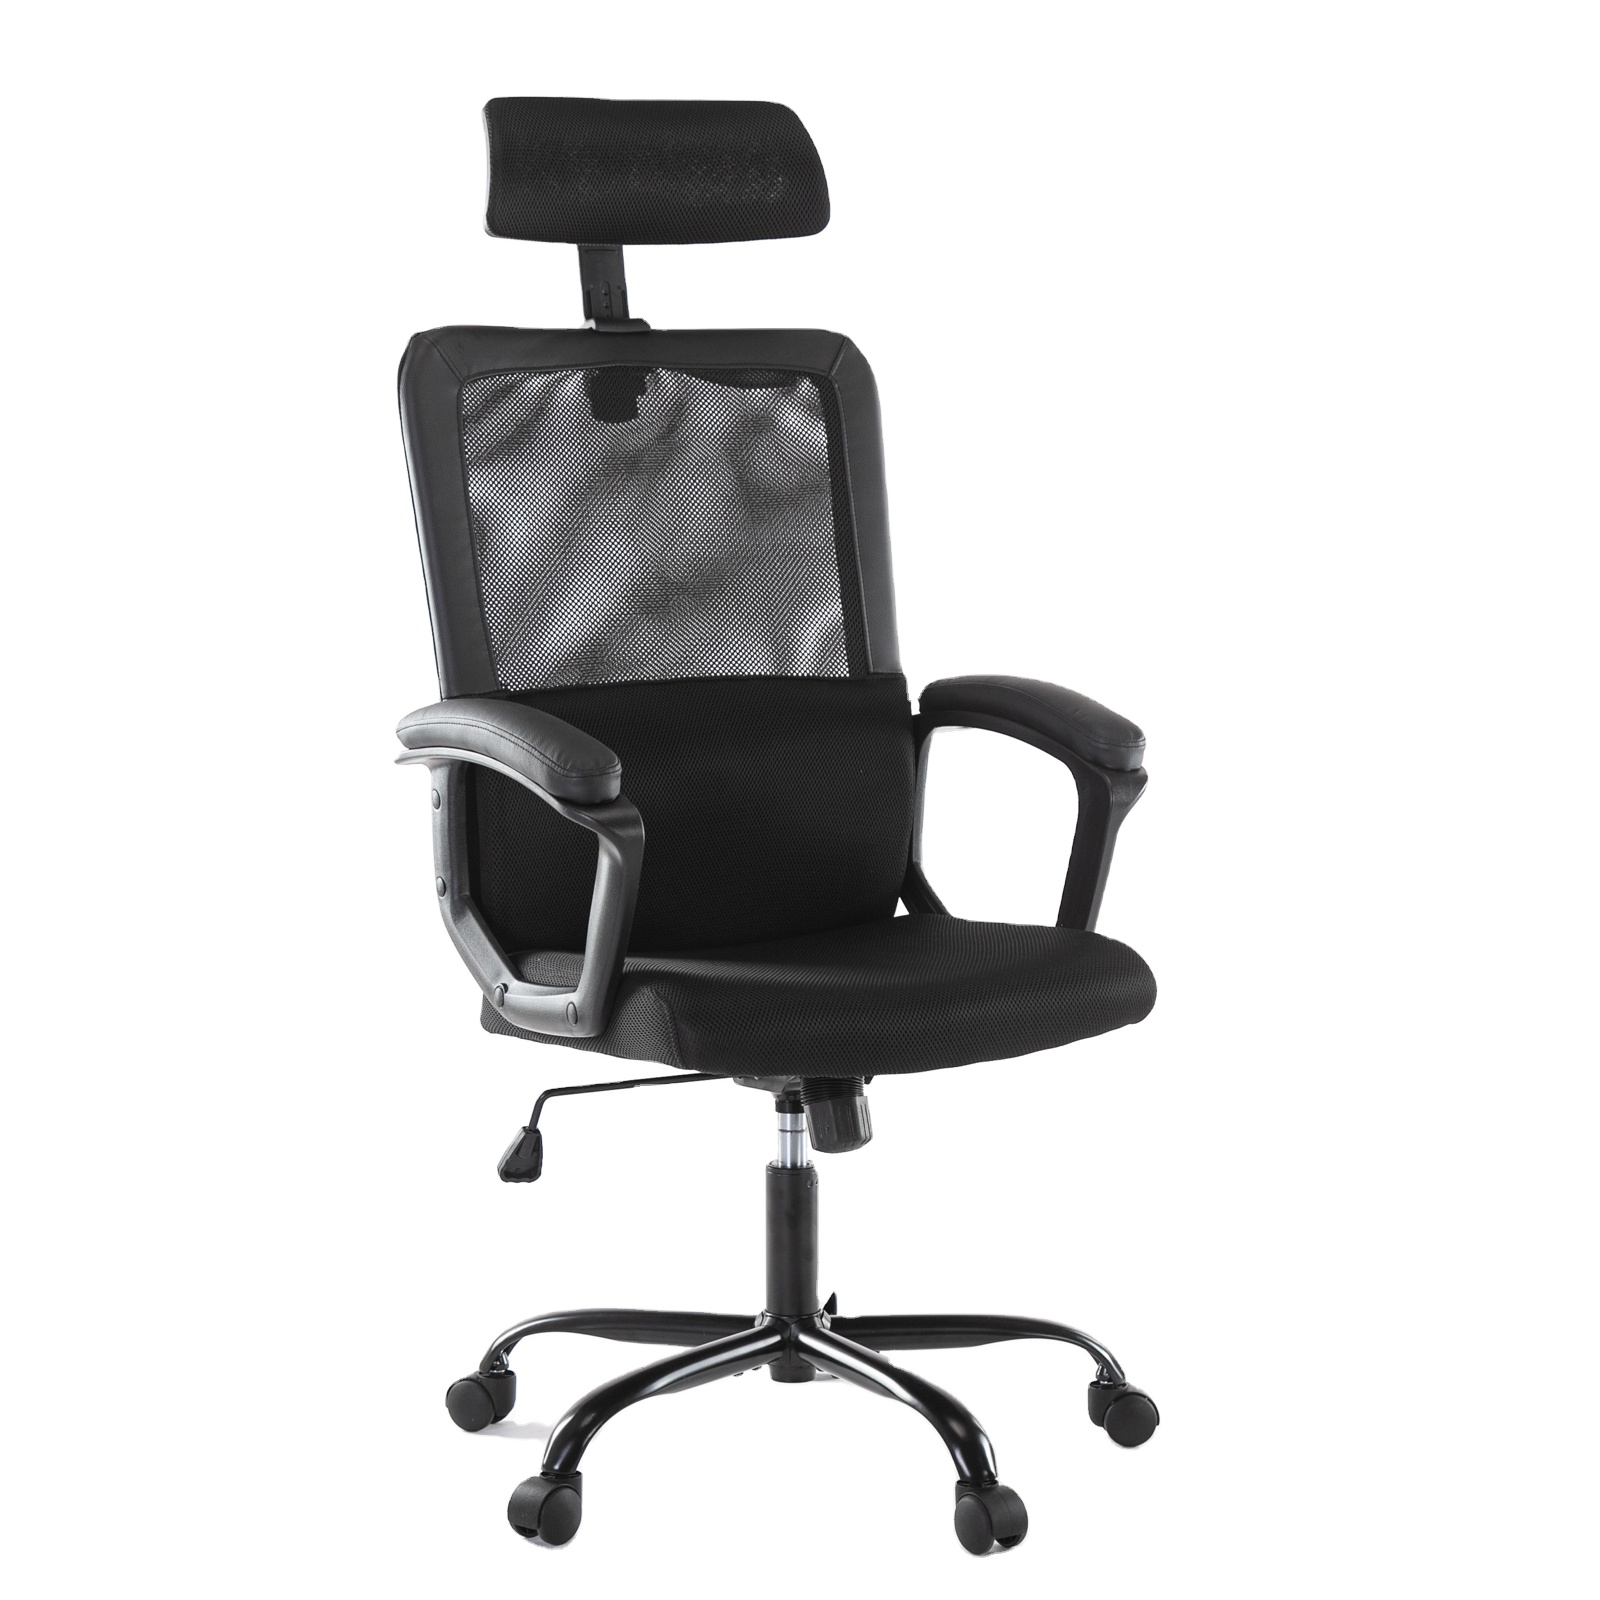 USA STOCK local Shipping Breathable Mesh Computer Chair with Ergonomic Adjustable Lumbar Support and Headrest